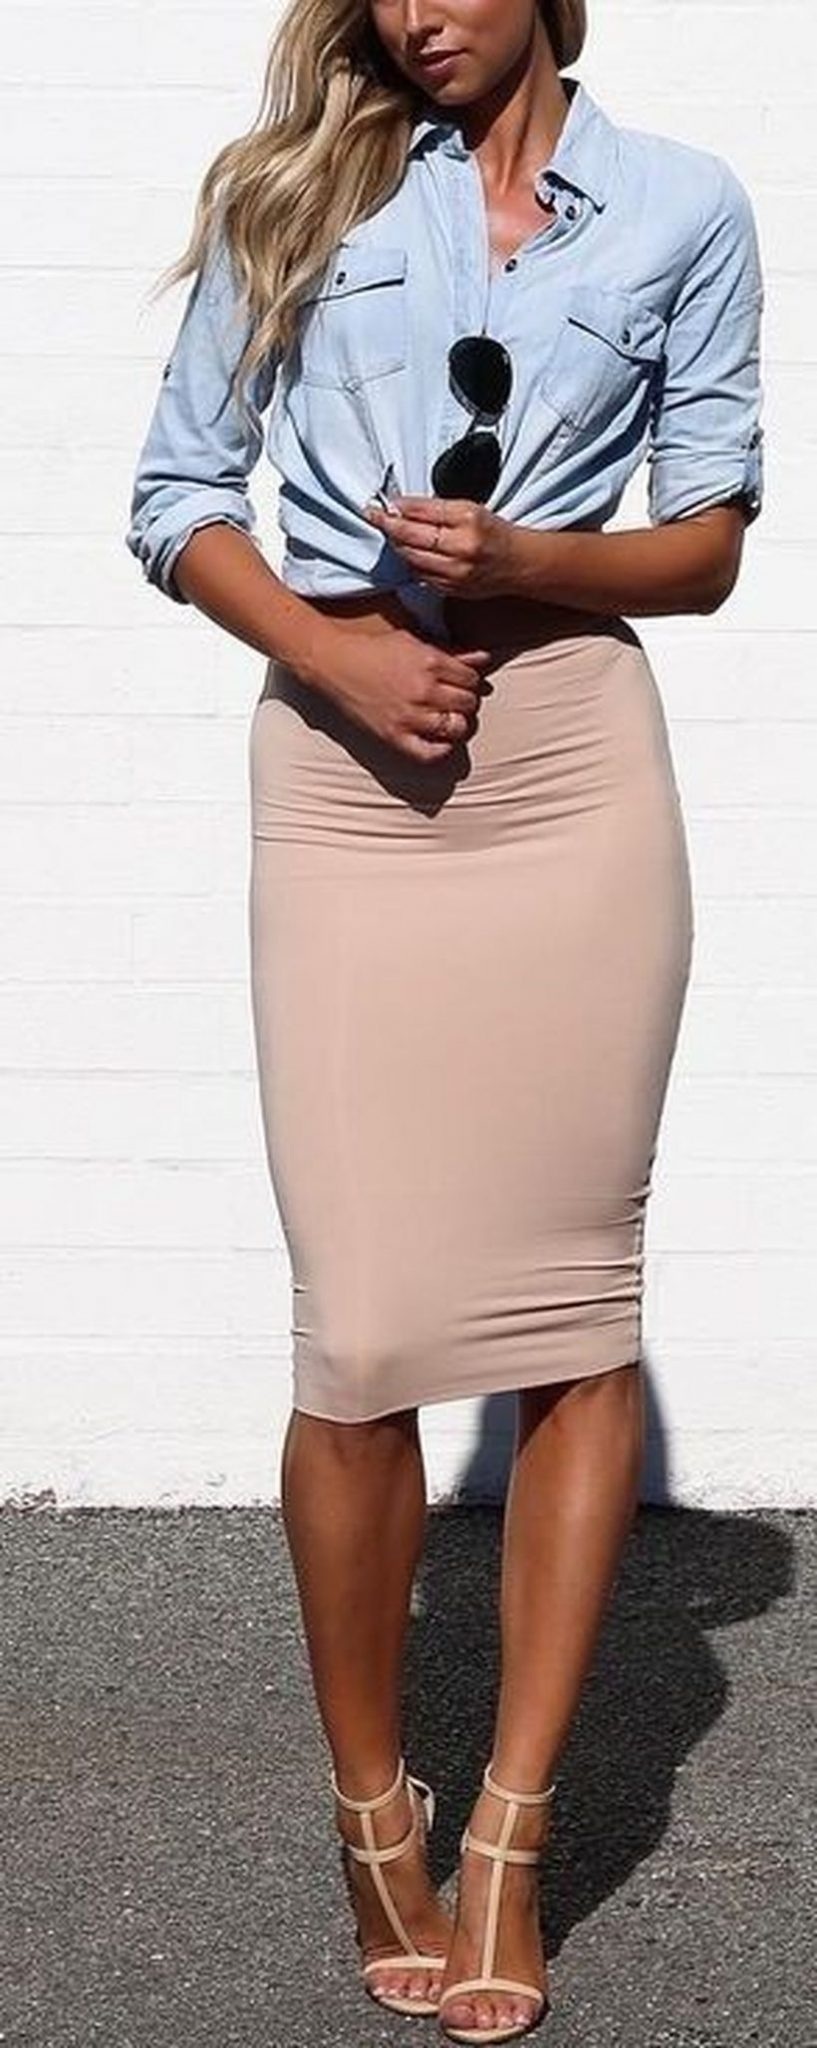 Fashionable skirt outfits ideas that you must try 2